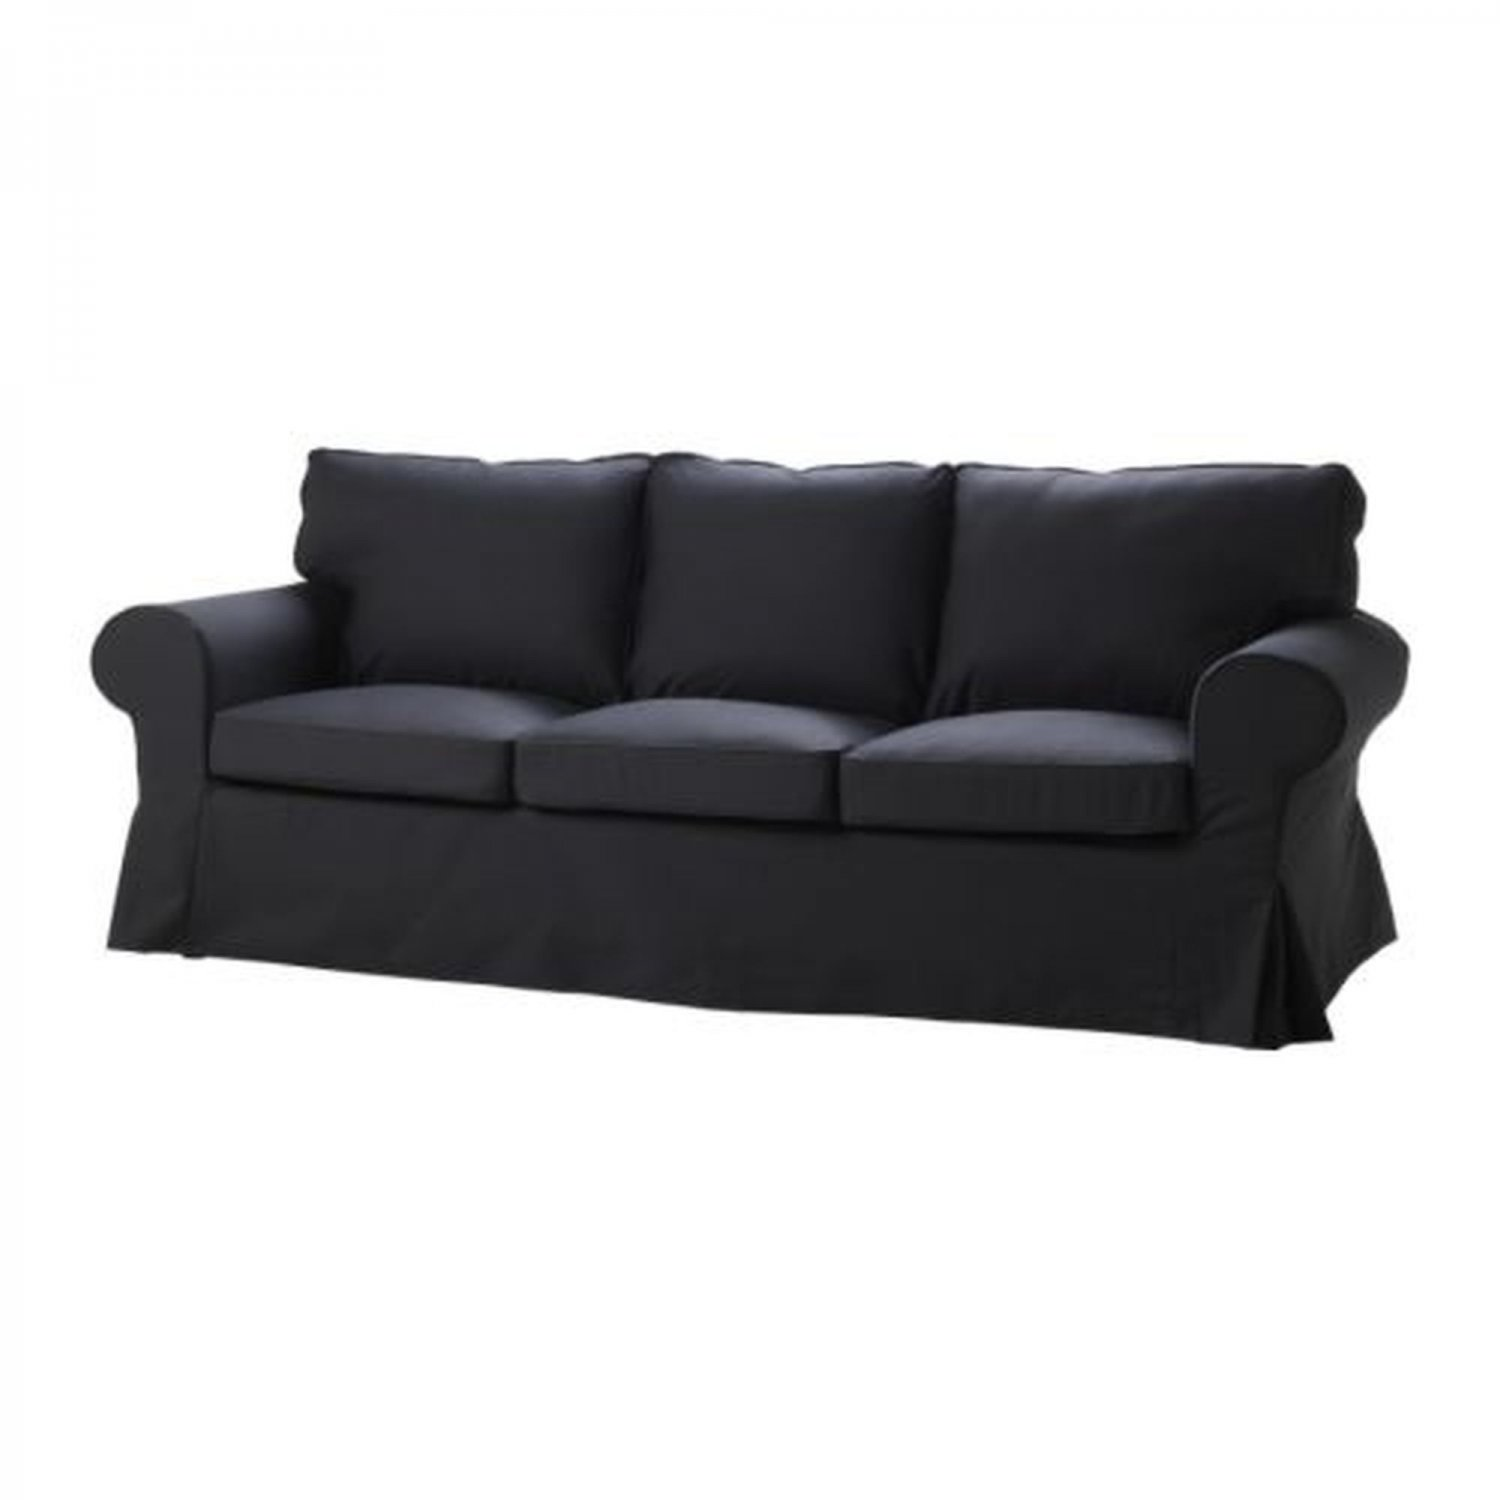 ikea karlanda sofa covers uk 2 seat bed with storage ektorp 3 slipcover cover idemo black cotton